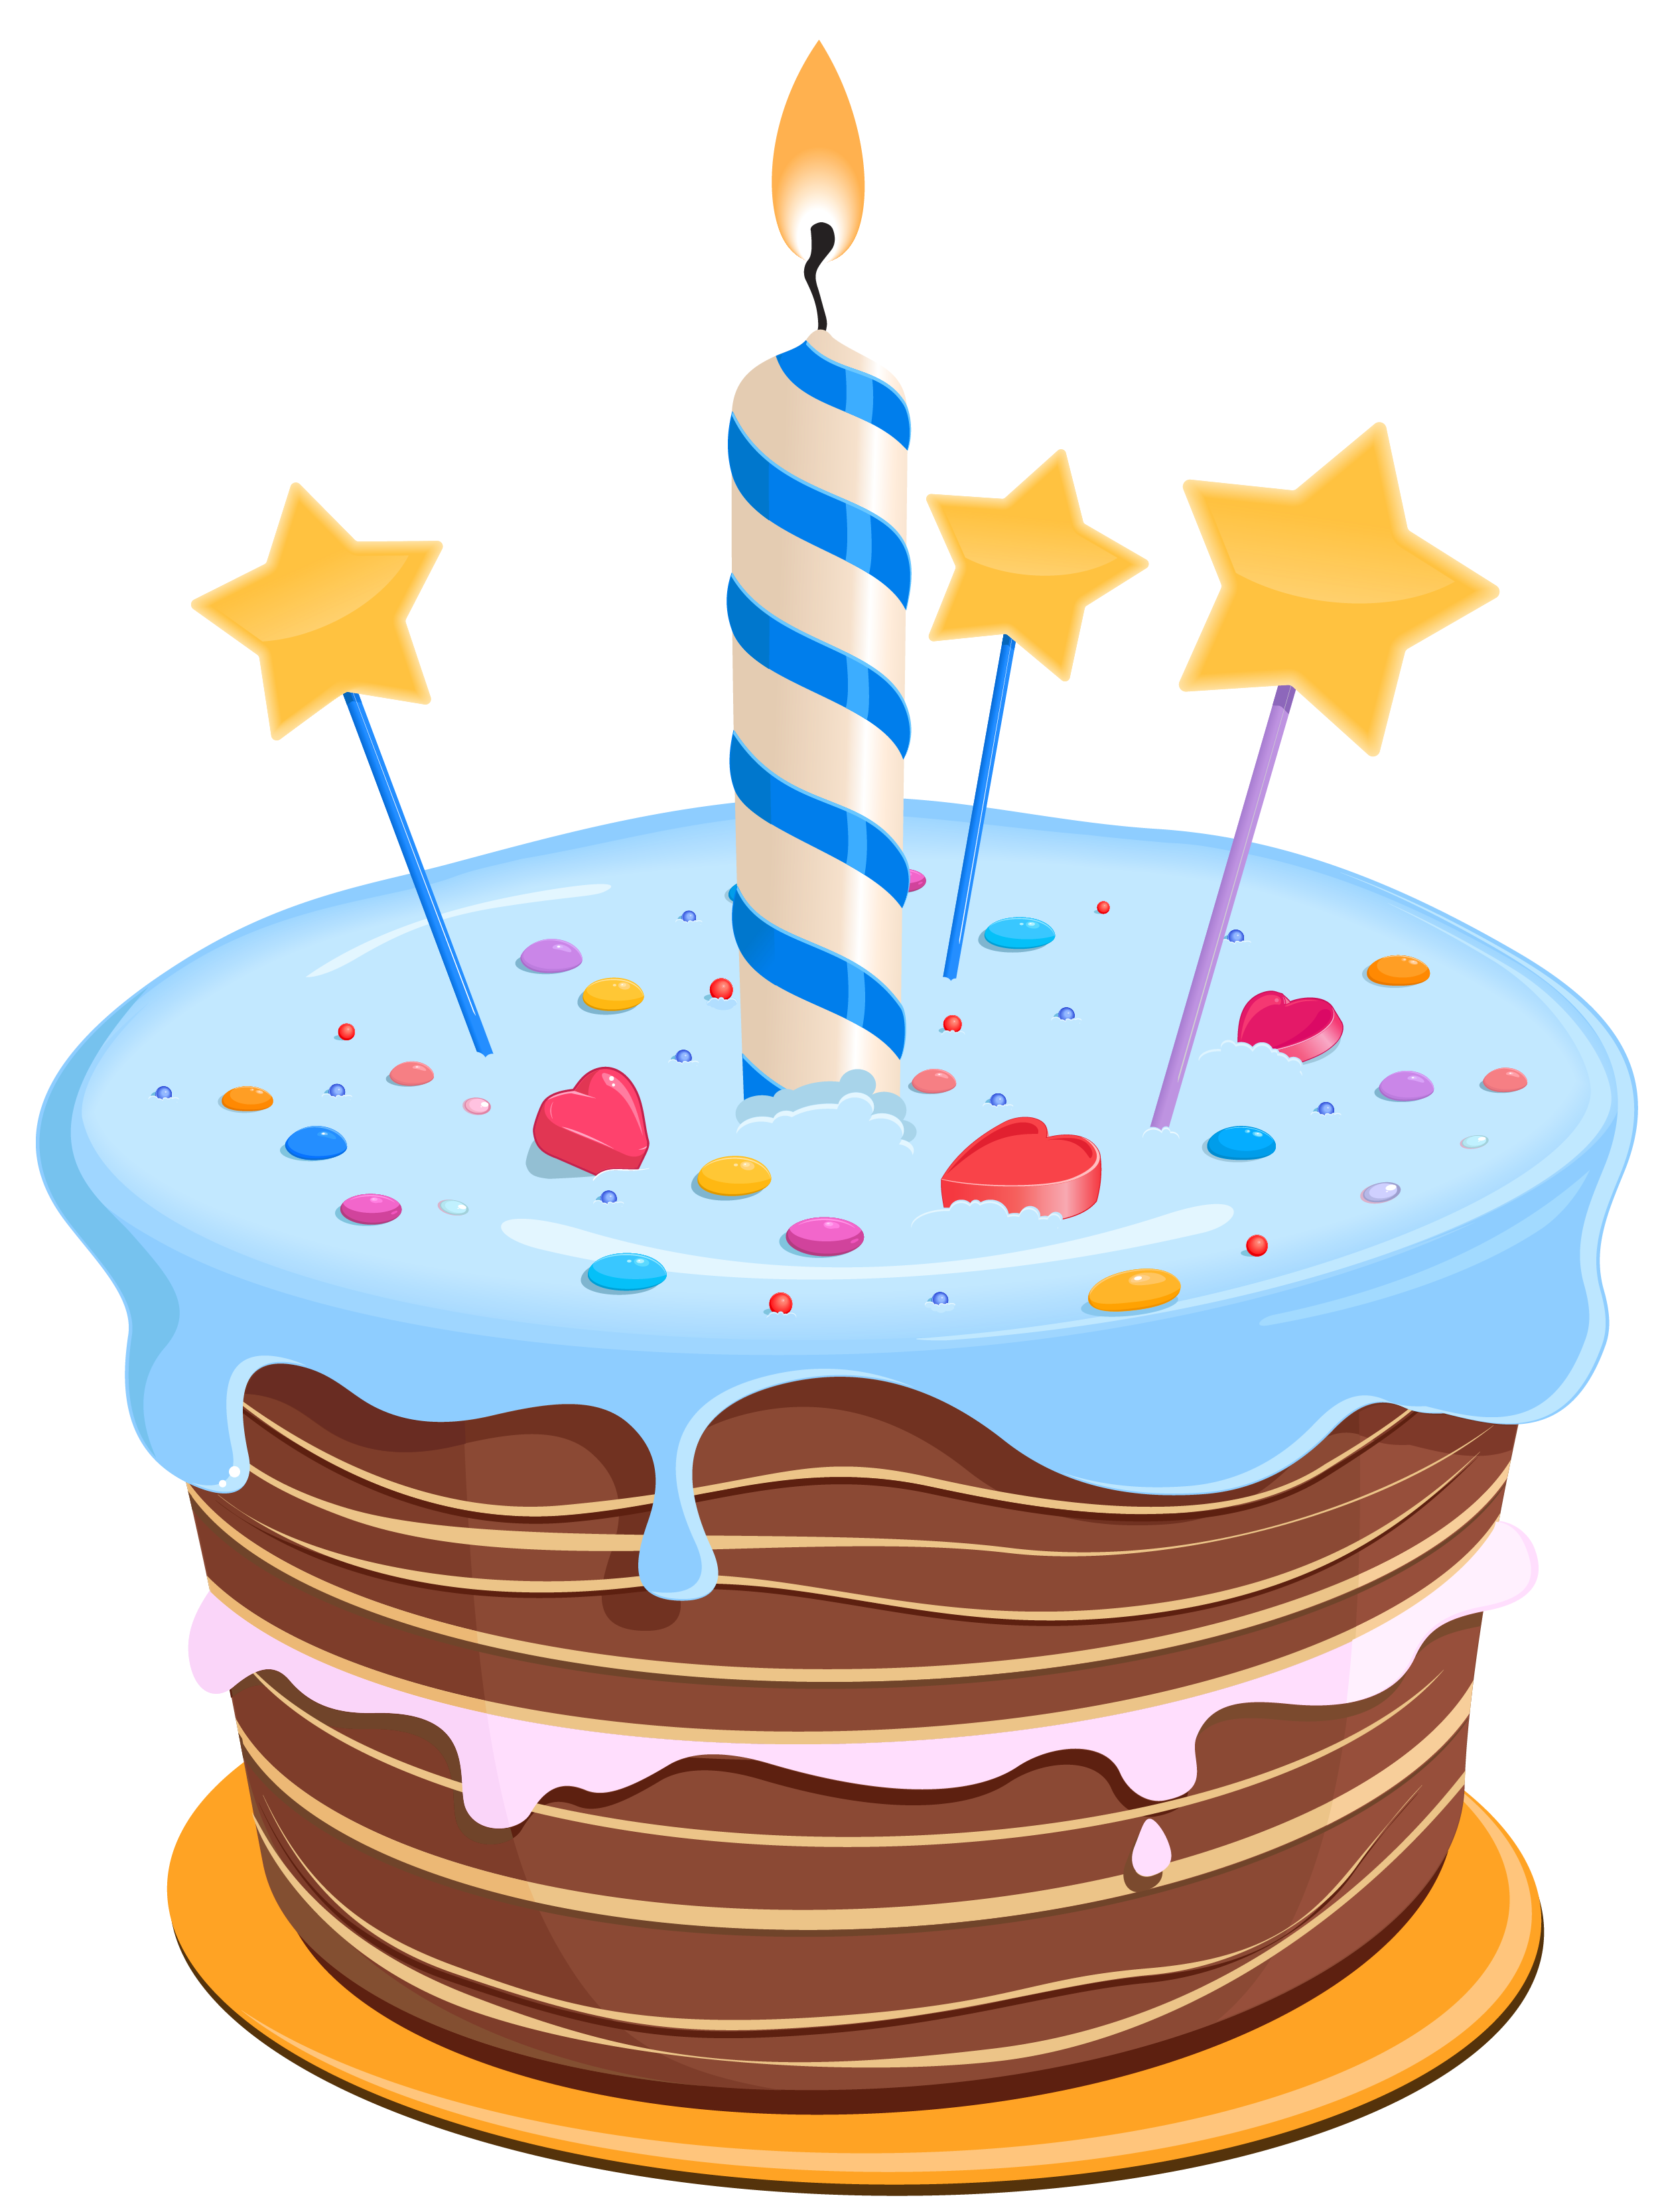 Birthday Cake Clipart Illustrations Royaltyfree Vector